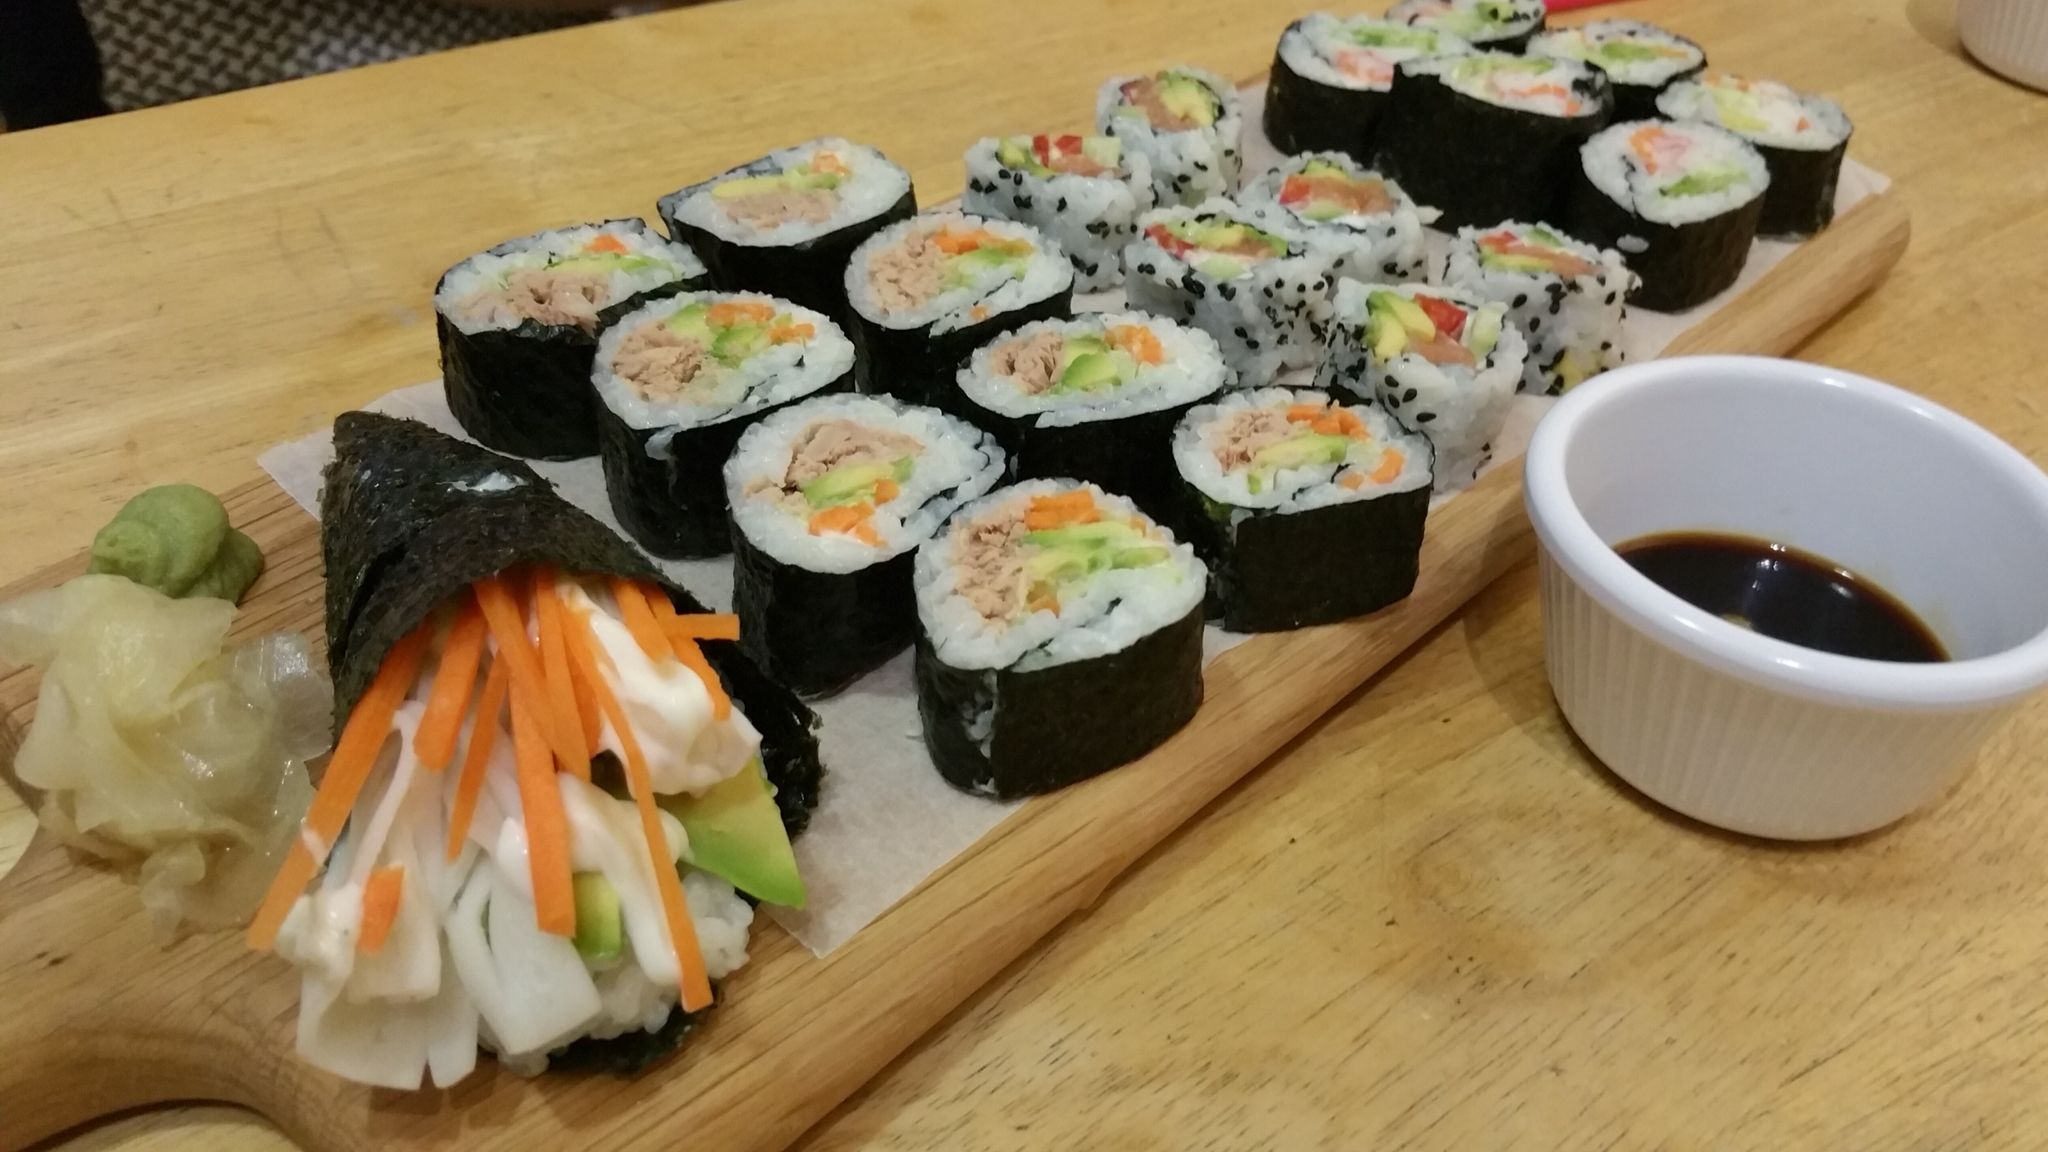 My own version of your basic sushi. #sushi #seafoodsushi #food